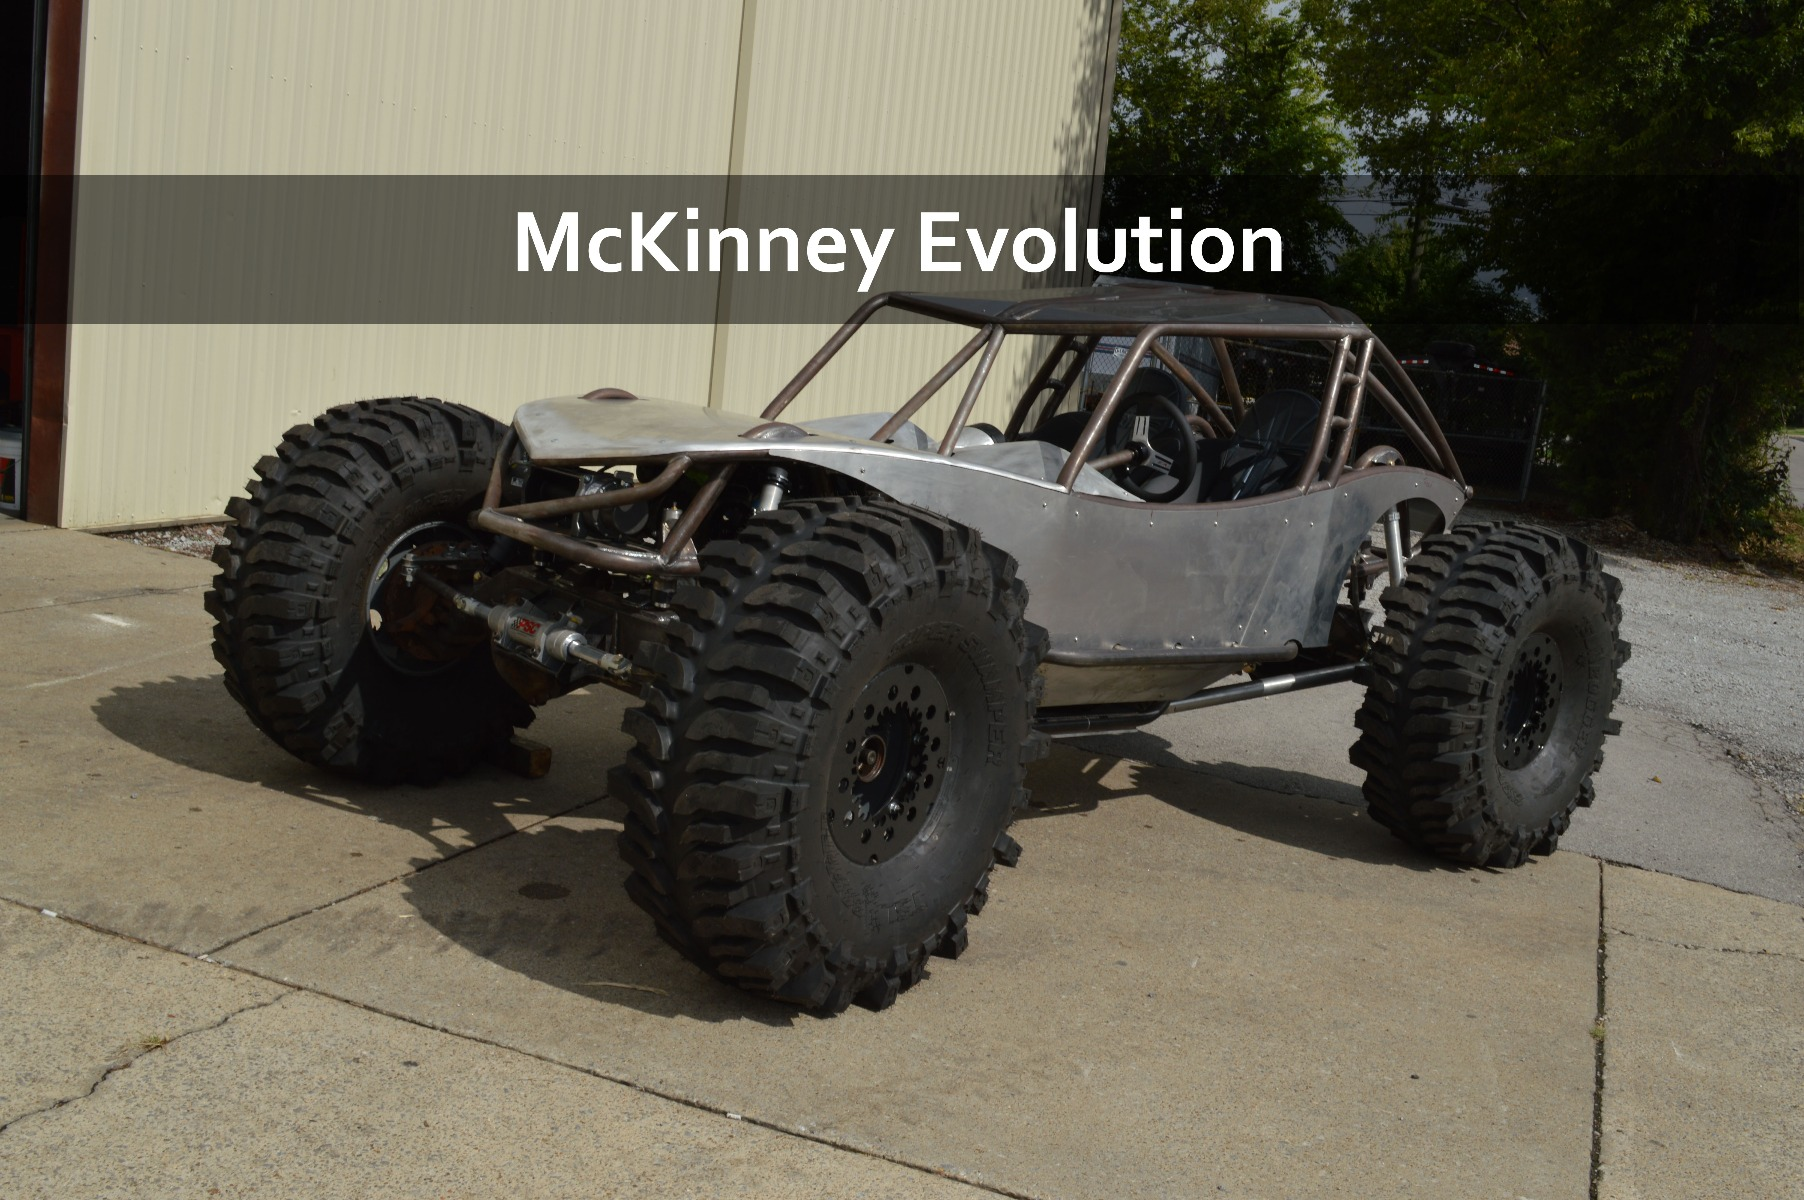 McKinney Evolution Rock Bouncer Rock Crawler Buggy